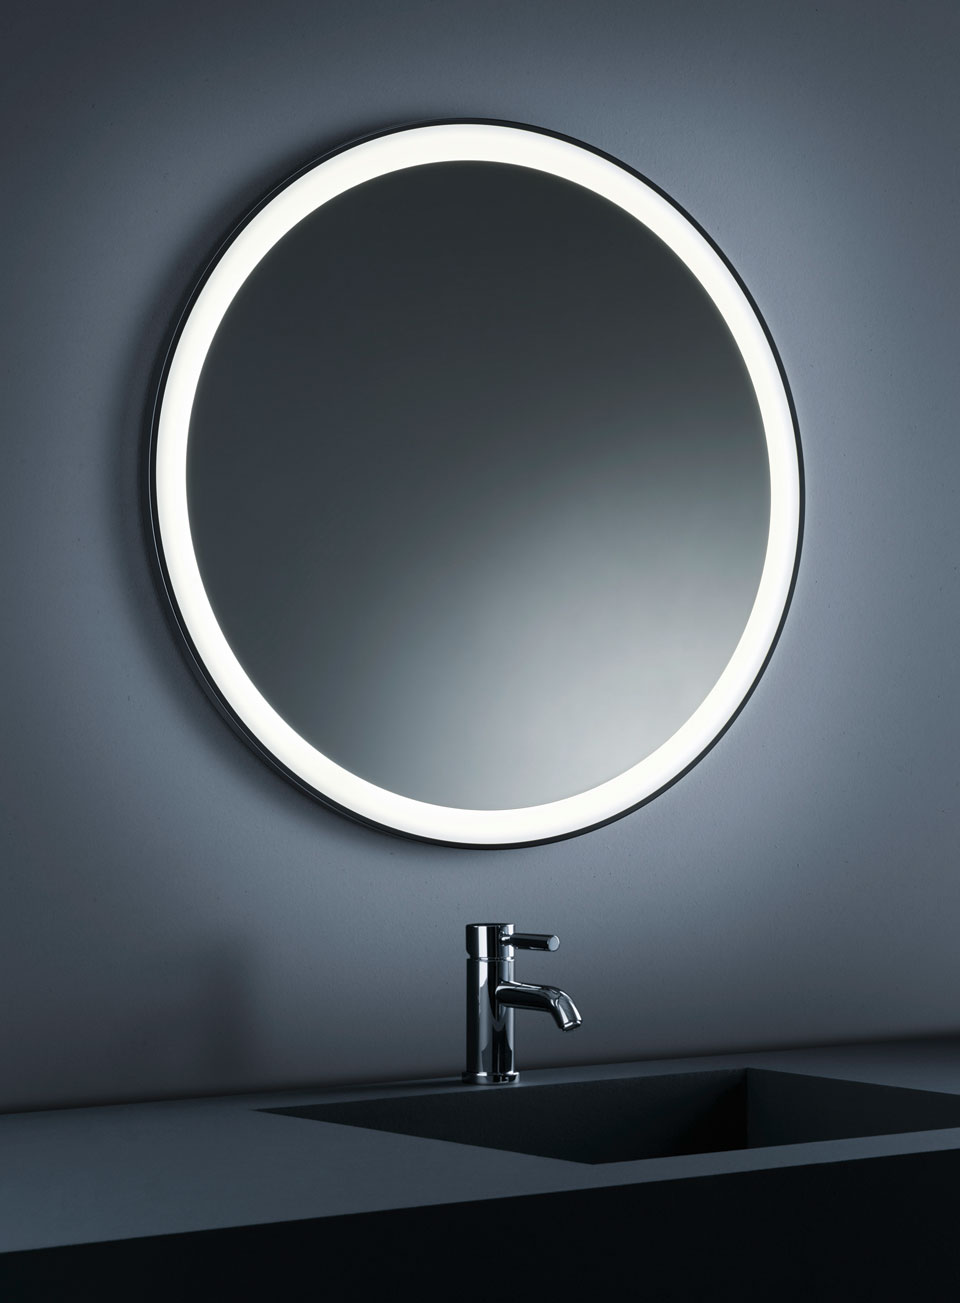 miroir salle de bain rond id es de d coration int rieure. Black Bedroom Furniture Sets. Home Design Ideas